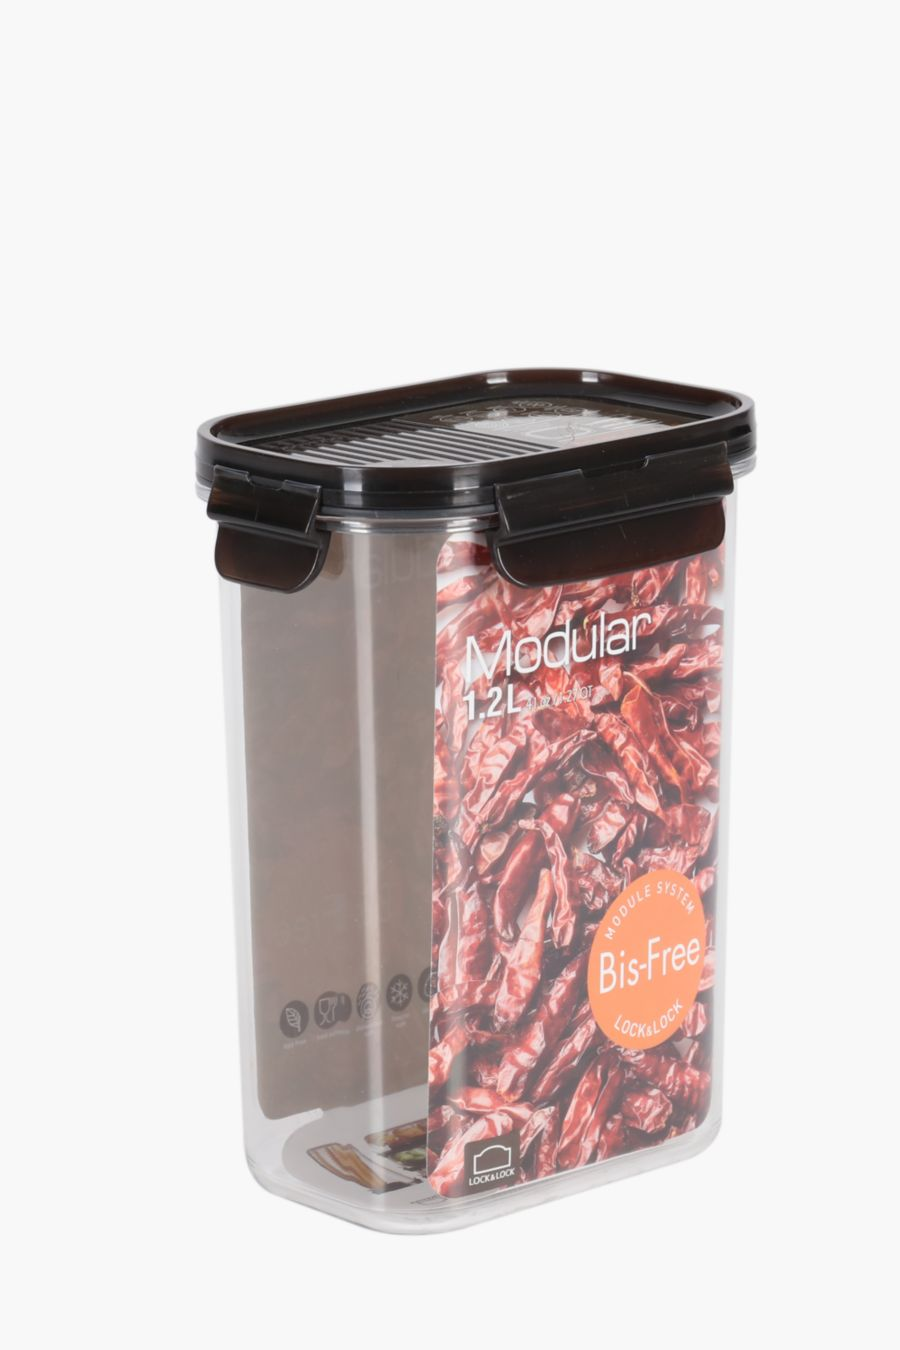 Lock Lock Modular Storage Container 12 Litre Shop New In Eat